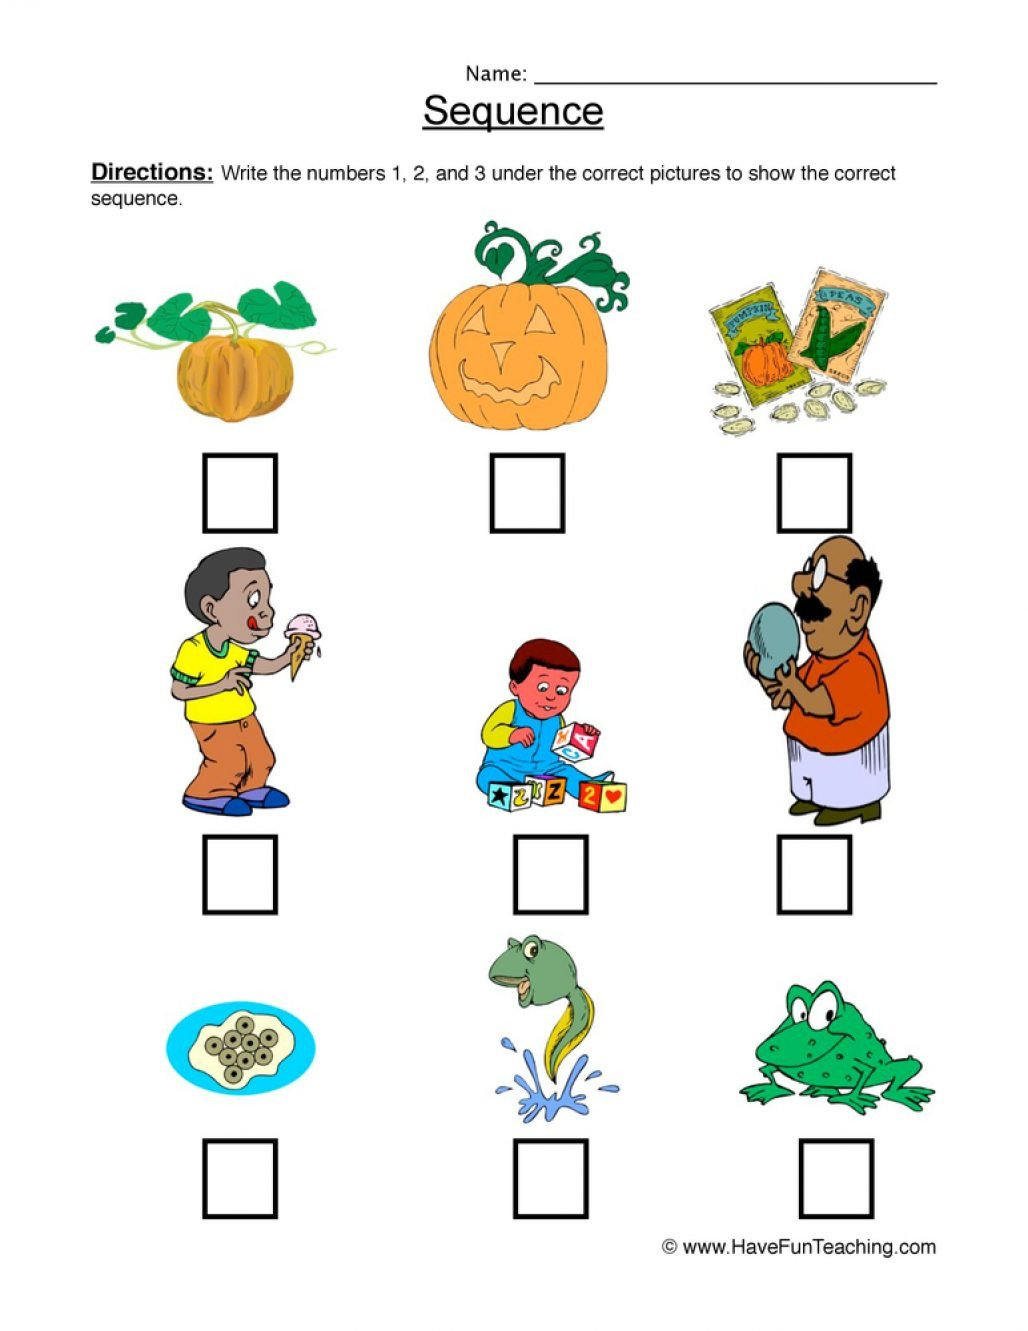 sequencing events worksheet sequencing events worksheets for kindergarten principal so sequence worksheet 1 snapshoot auteckfo